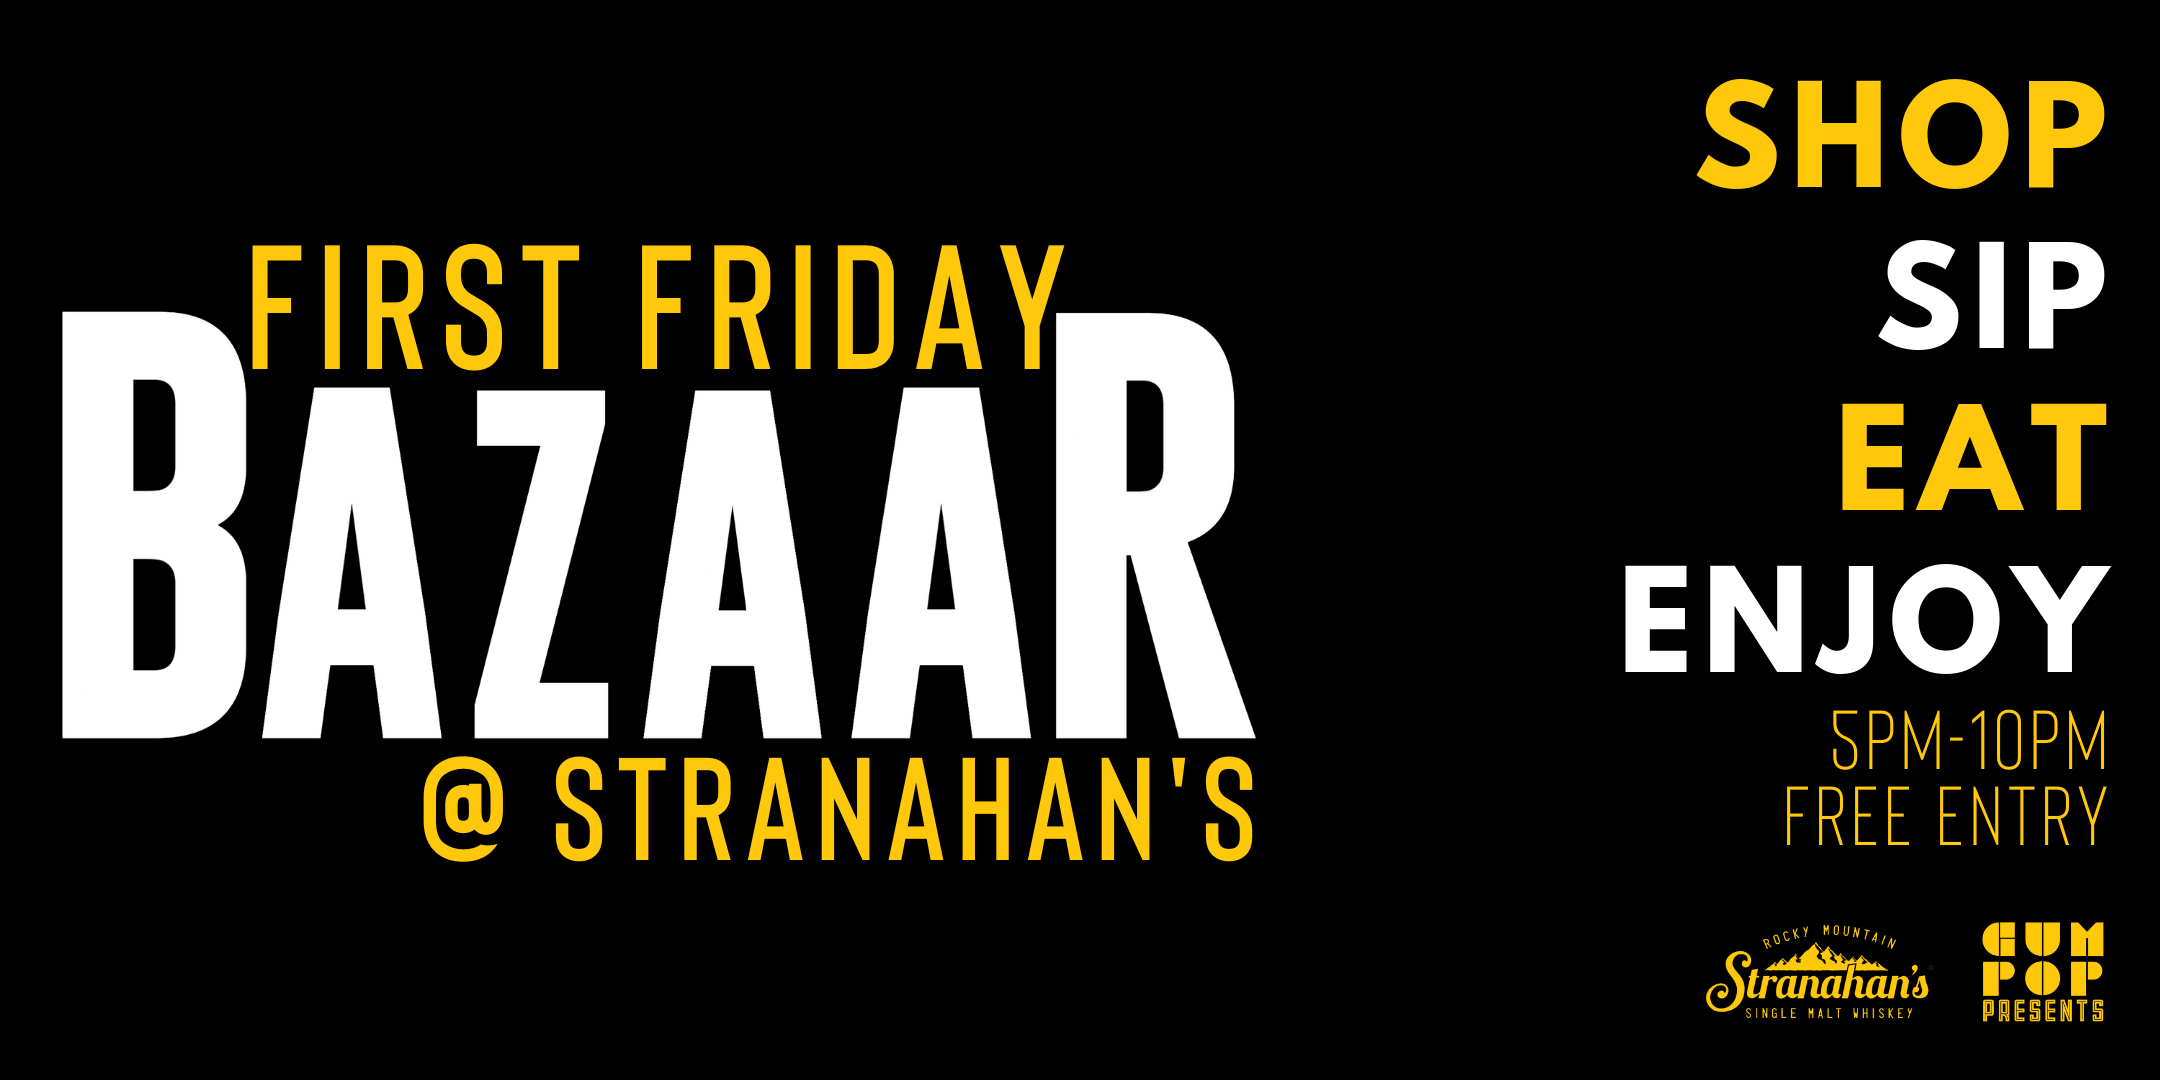 Copy of FIRST FRIDAY BAZAAR (1).png